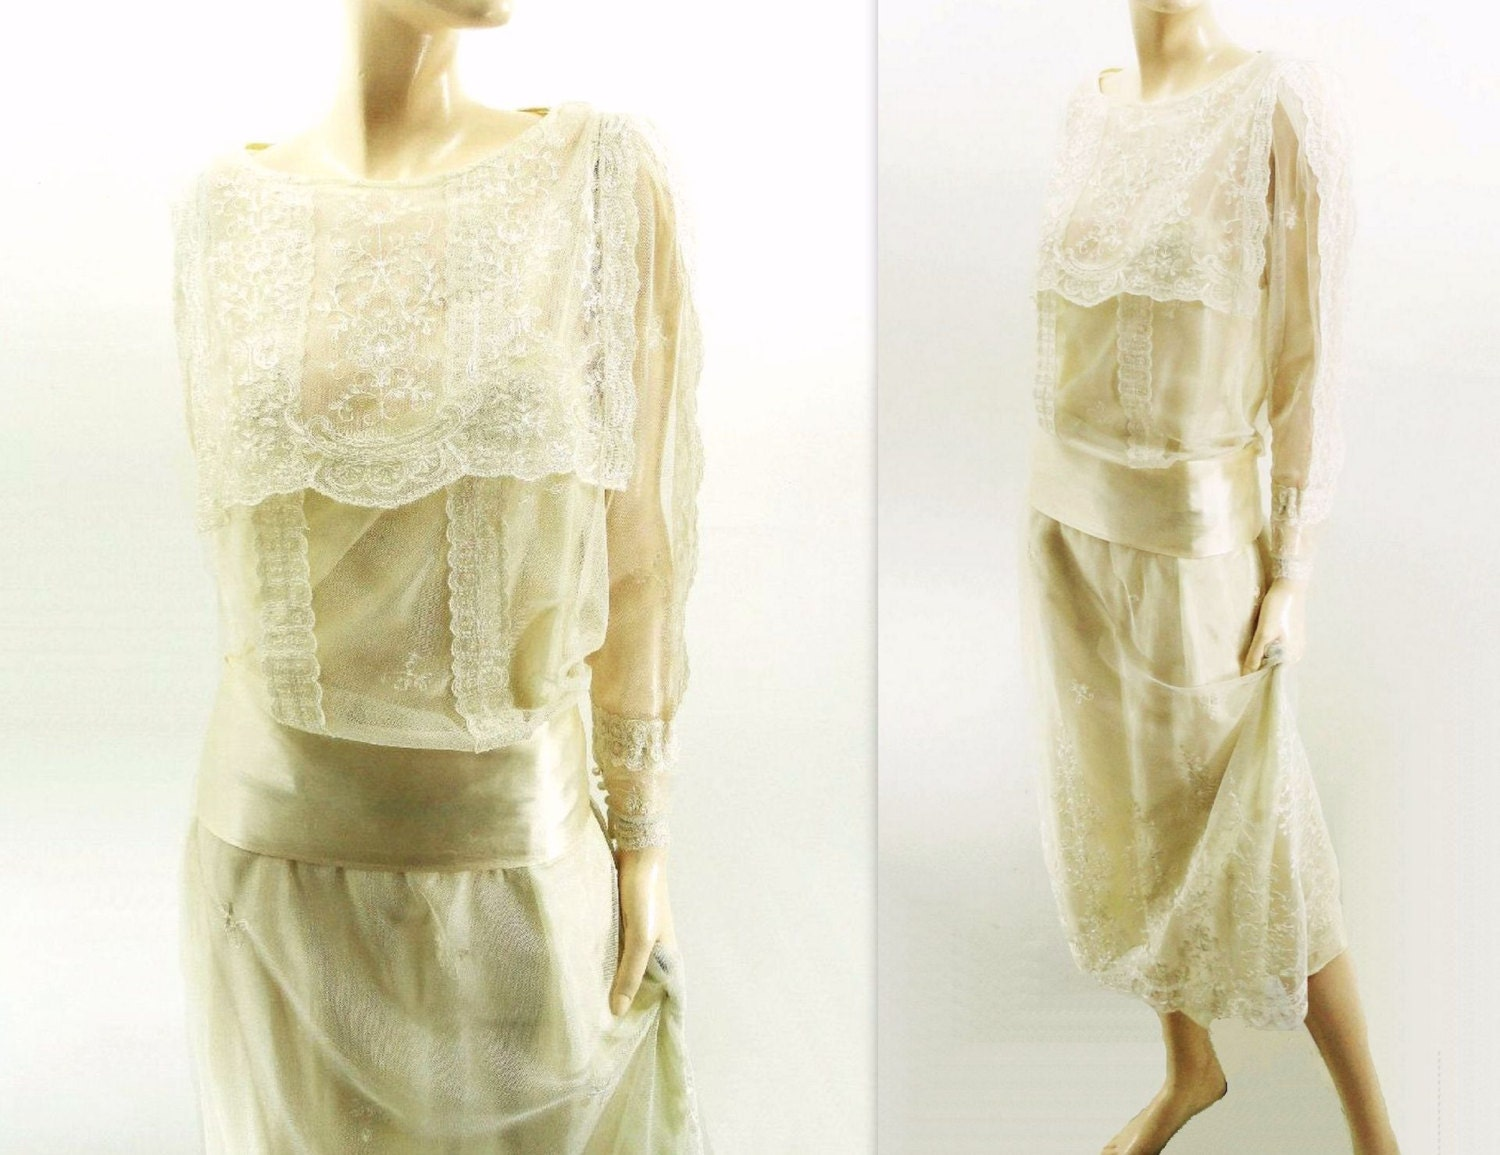 Vintage wedding dress 1980s flapper 20s style by for Vintage flapper wedding dress